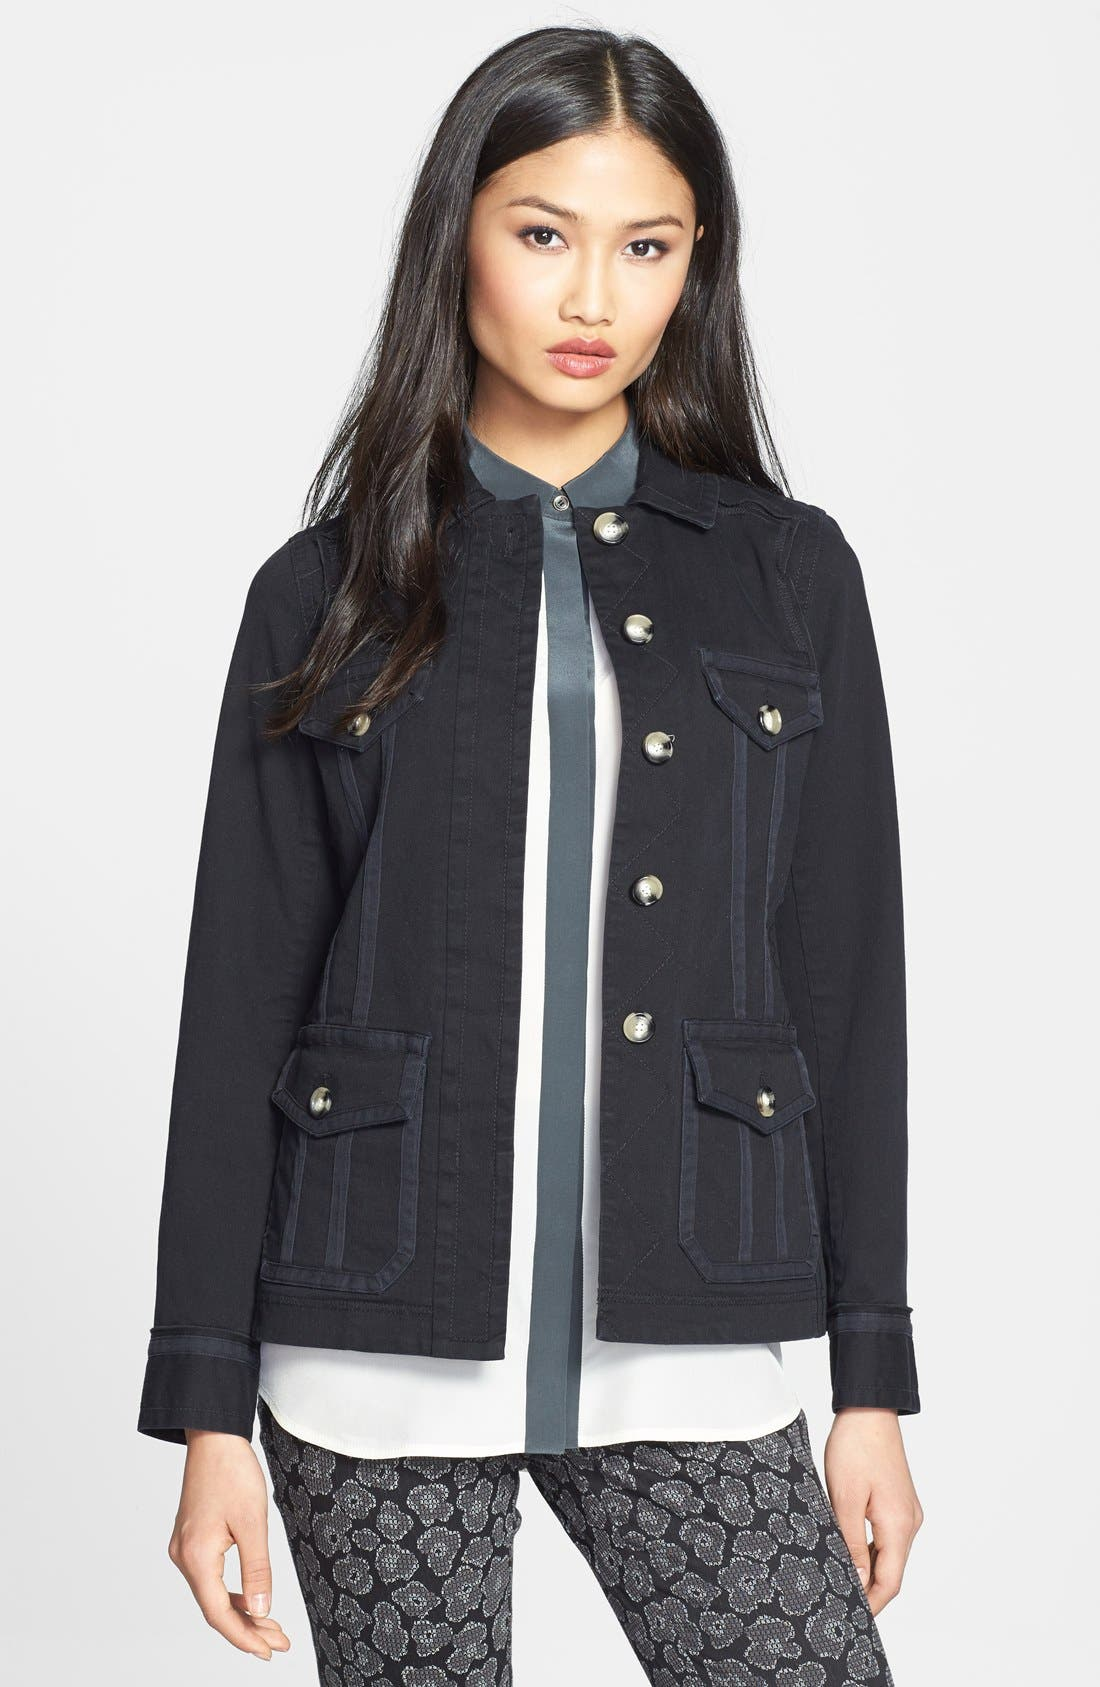 Alternate Image 1 Selected - MARC BY MARC JACOBS 'Zeta' Cotton Twill Jacket